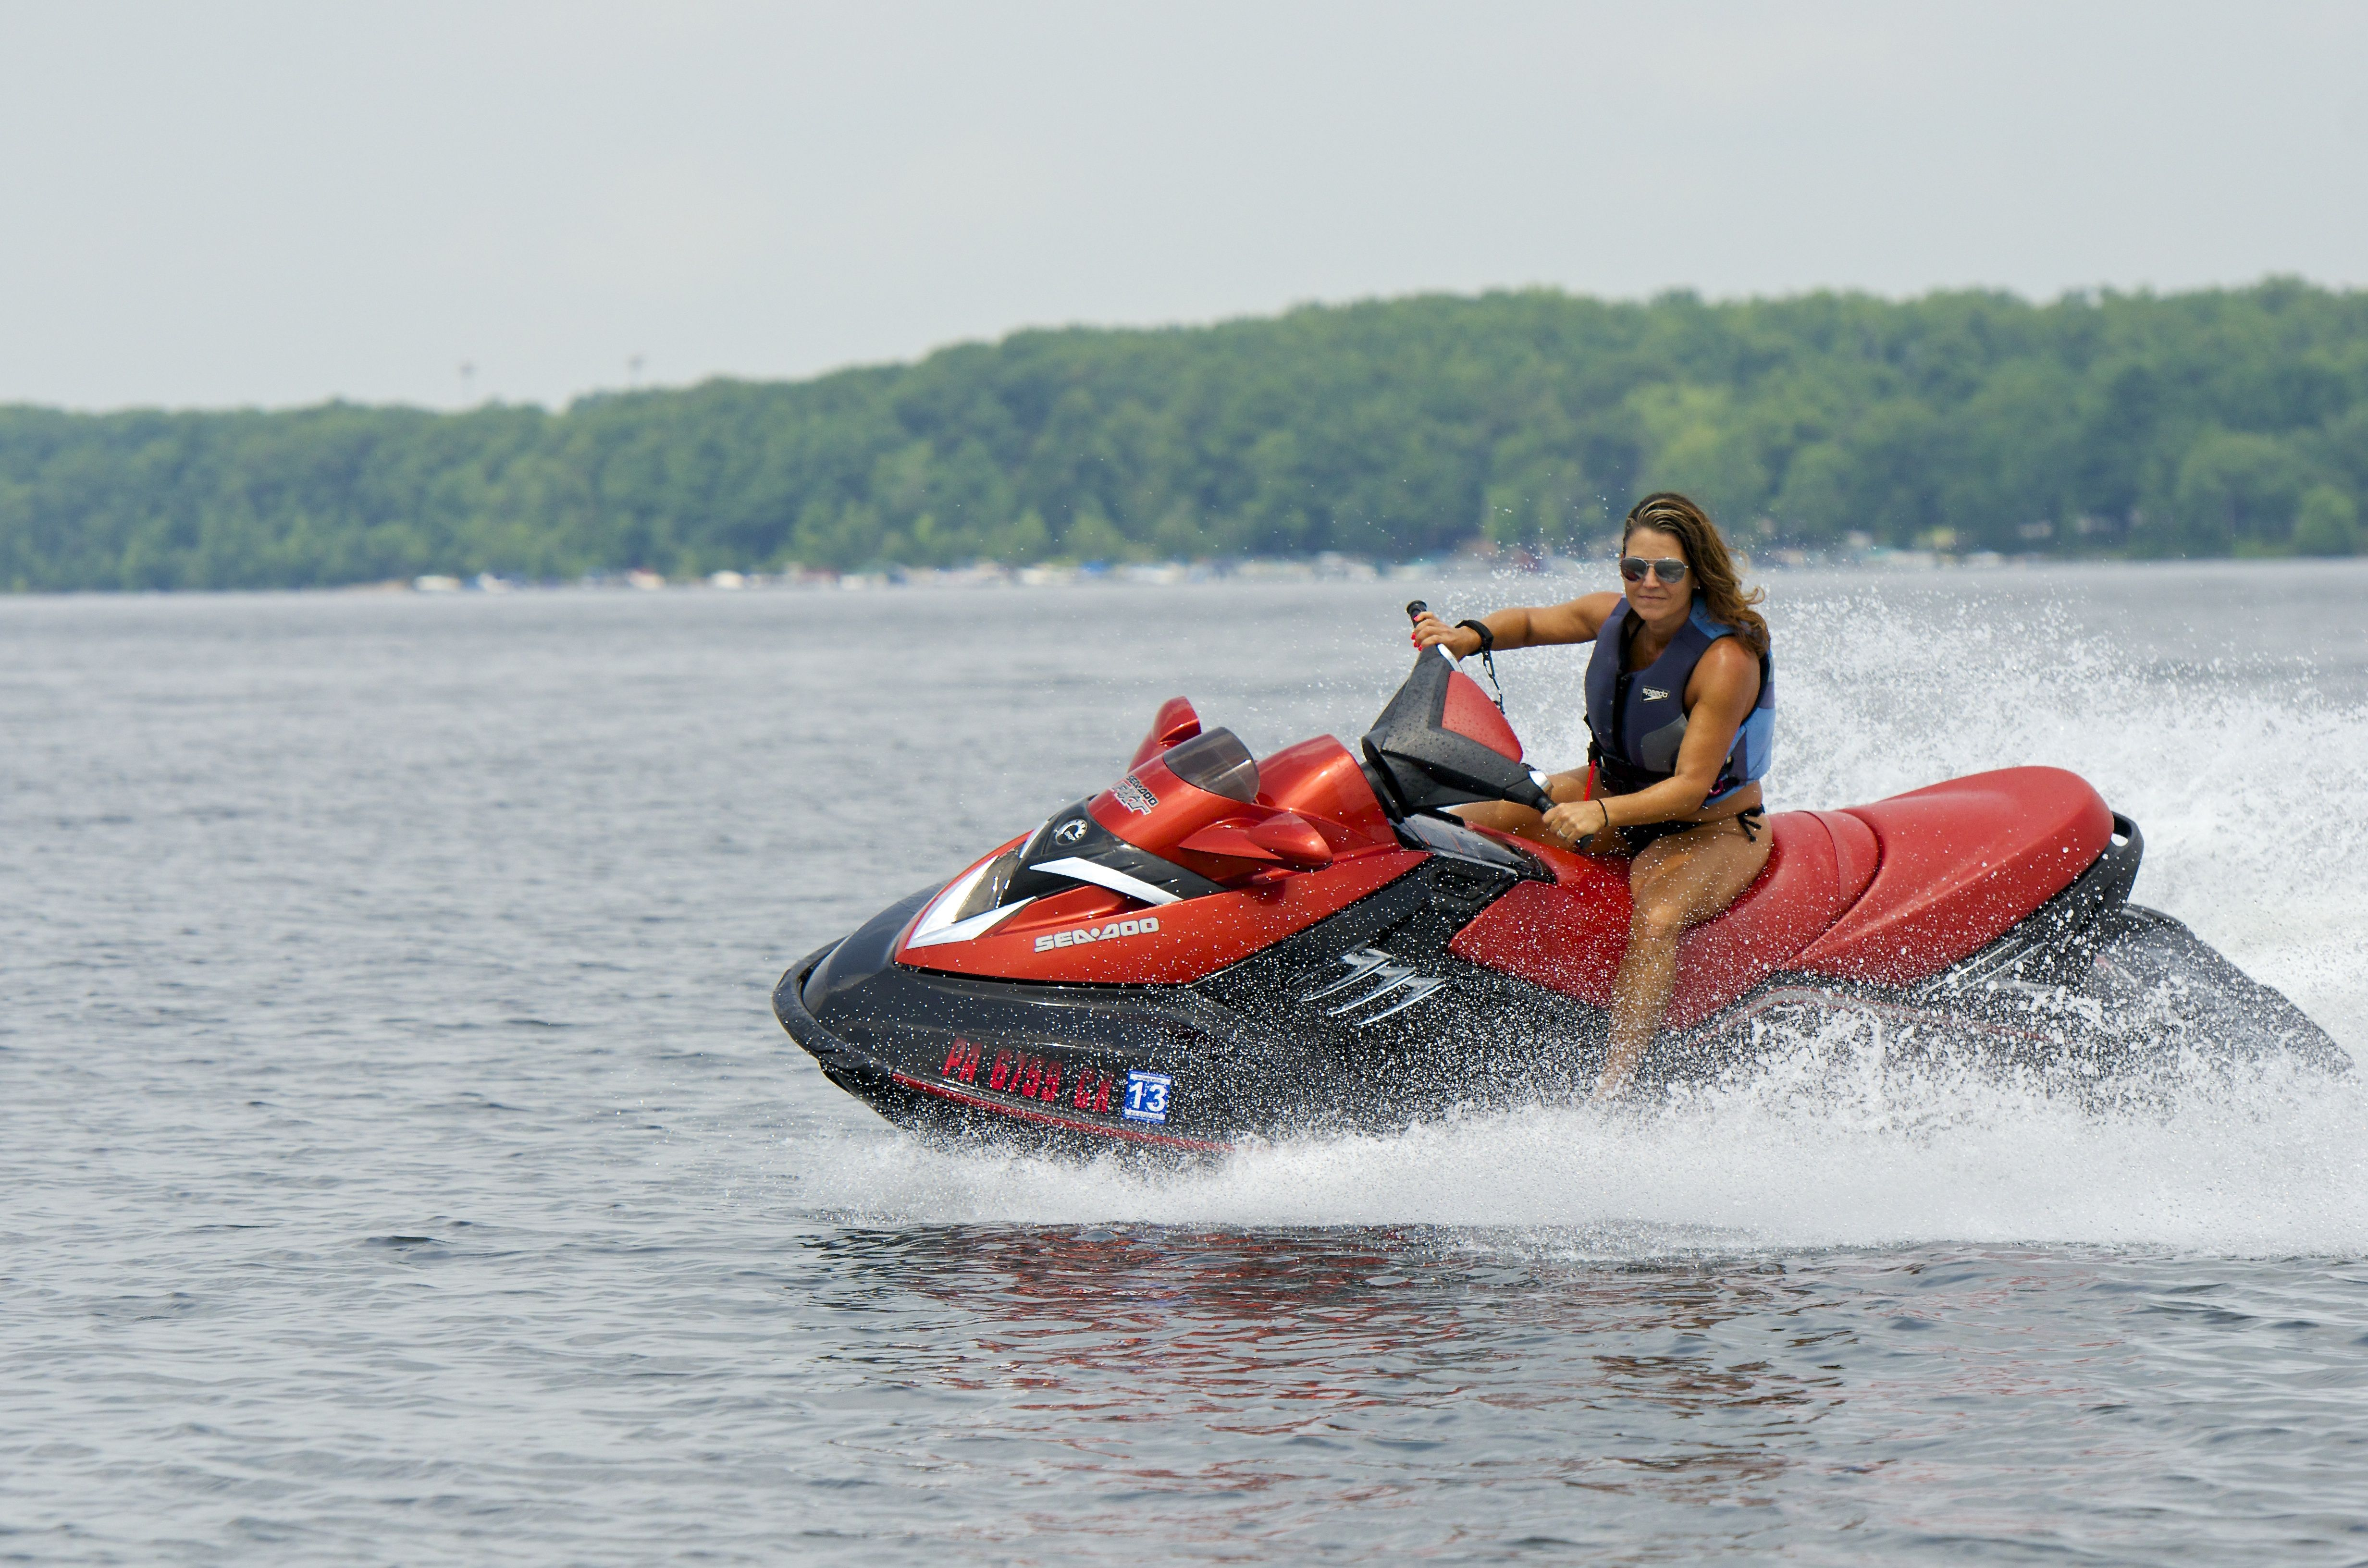 How Fast Can You Go Race Your Family And Friends On A Jet Ski On Lake Wallenpaupack In The Poconomtns Lake Wallenpaupack Boat Poconos